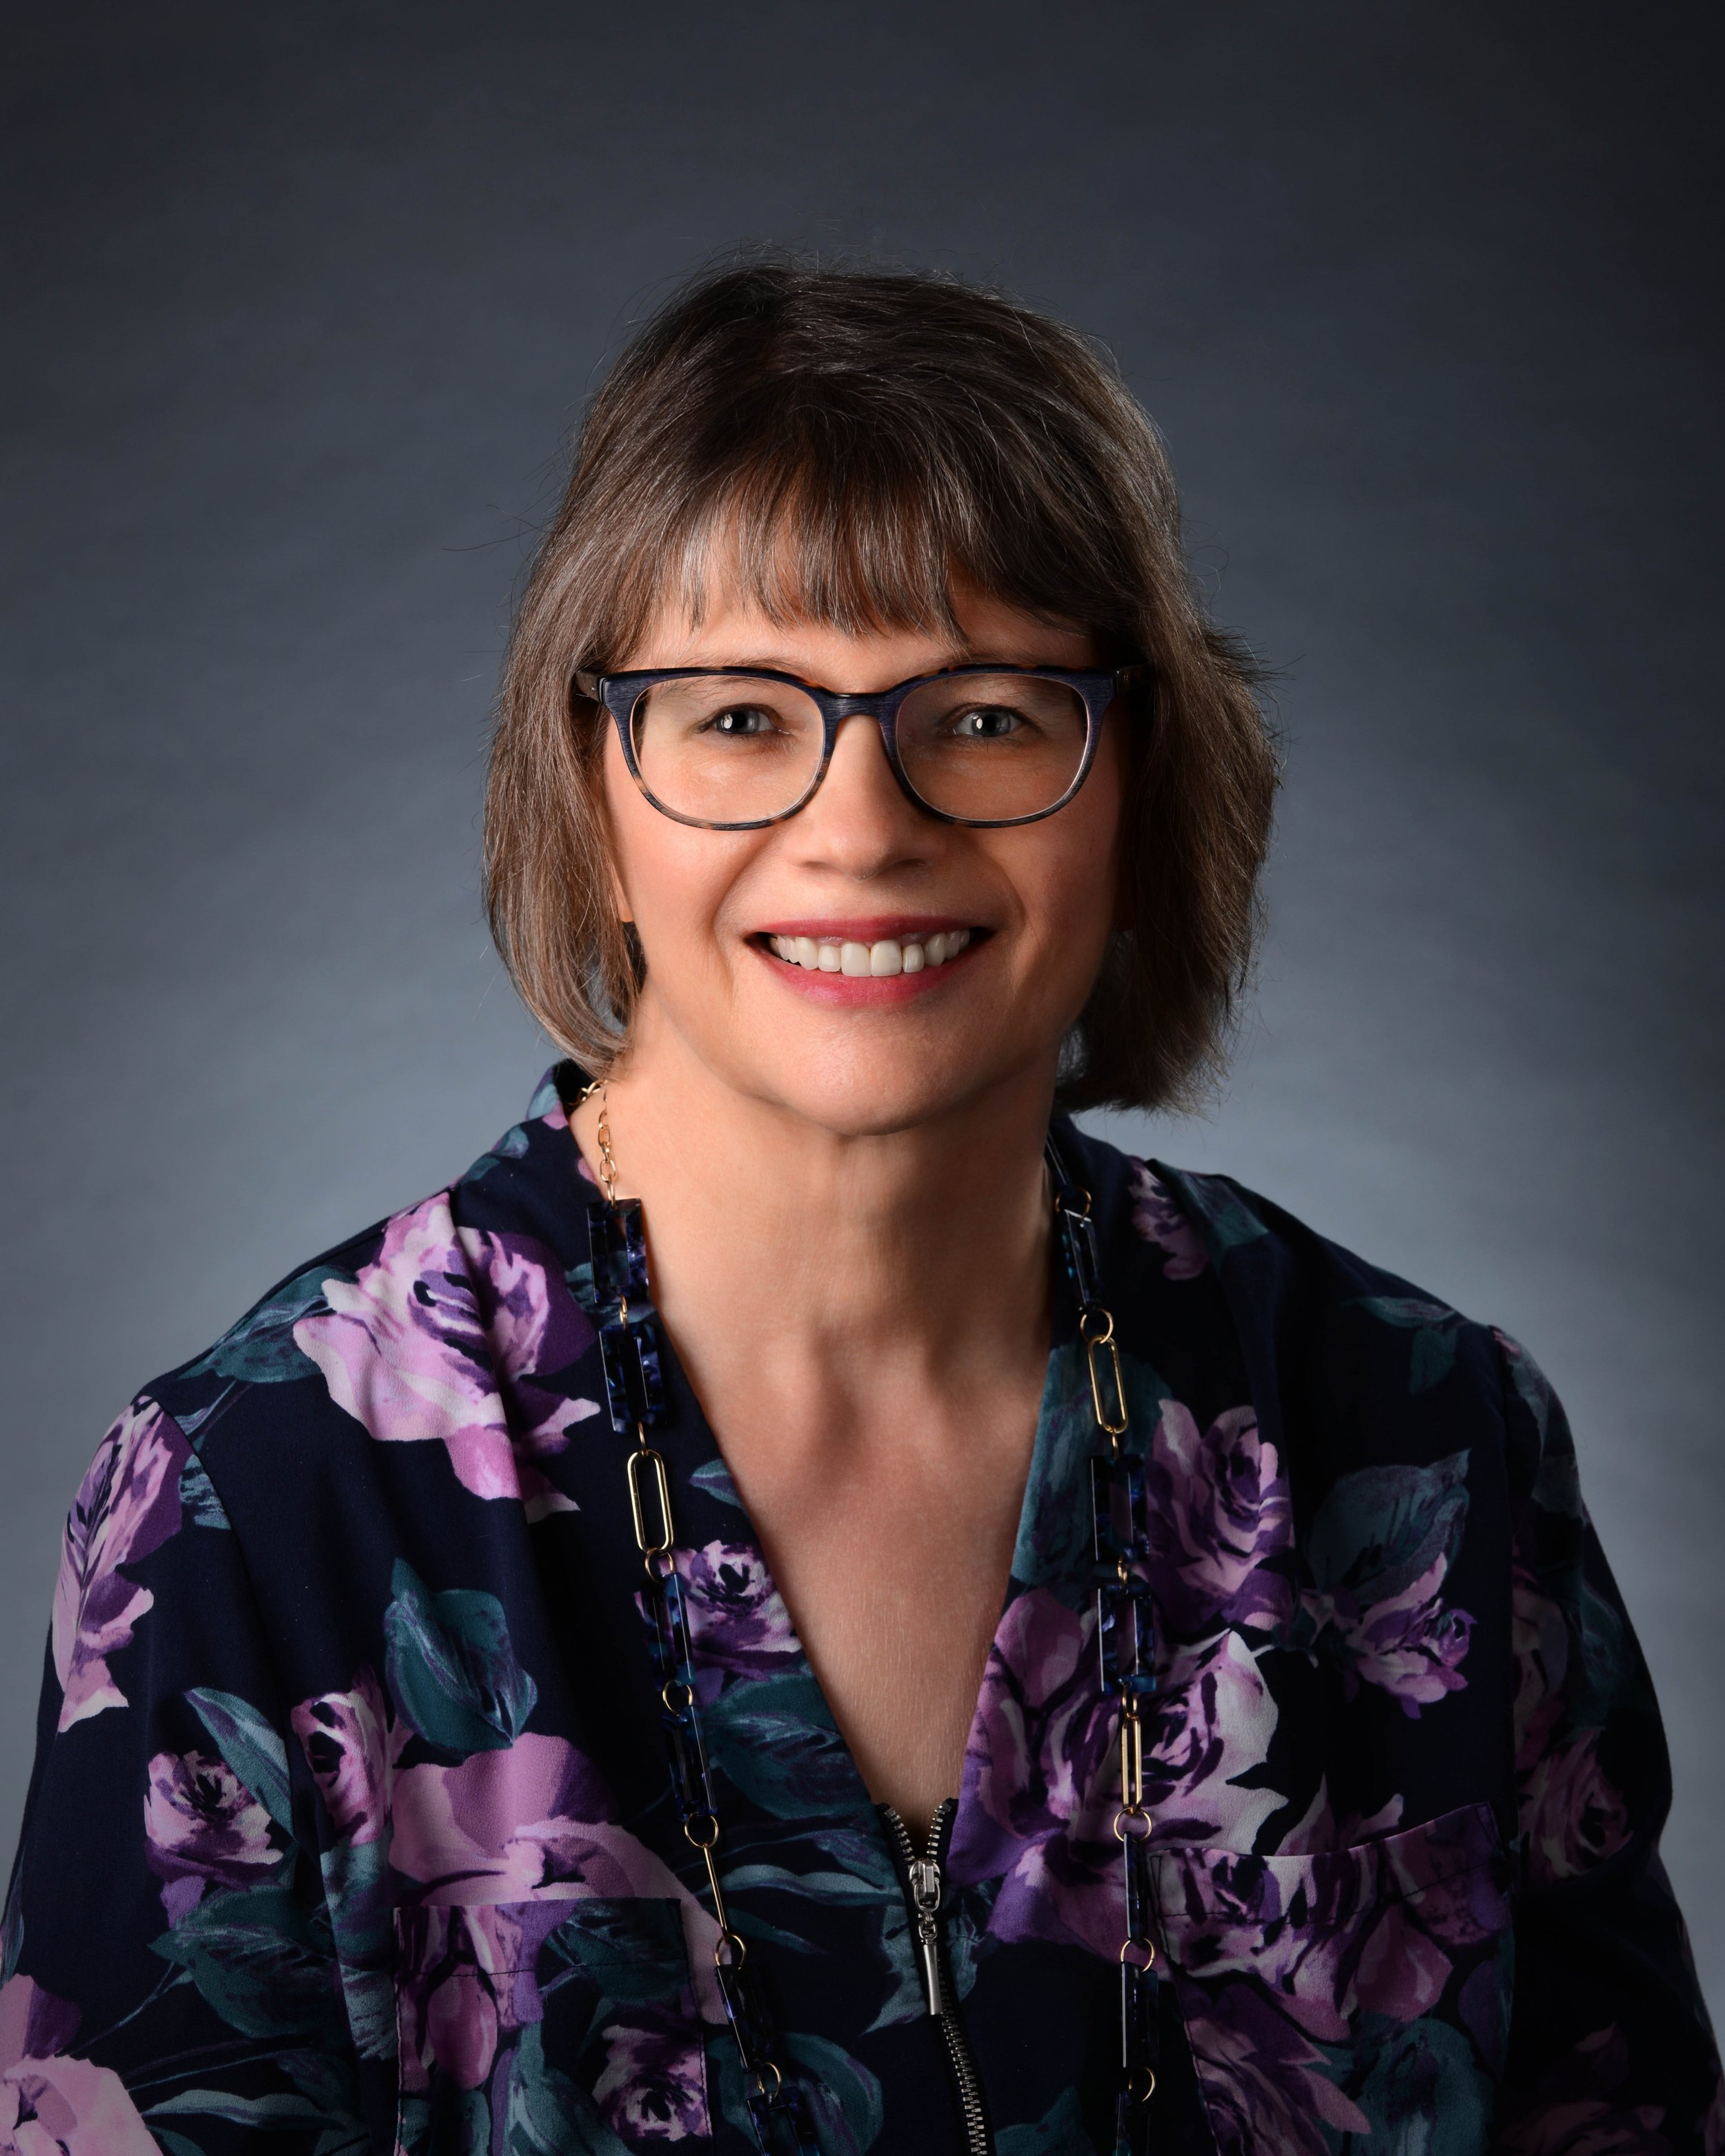 Deb Marinos MS, Nationally Certified Rehabilitation Counselor, Oregon Licensed Professional Counselor Intern - supervised by George Olson, LPC R4795 - MS, CRC Instructor